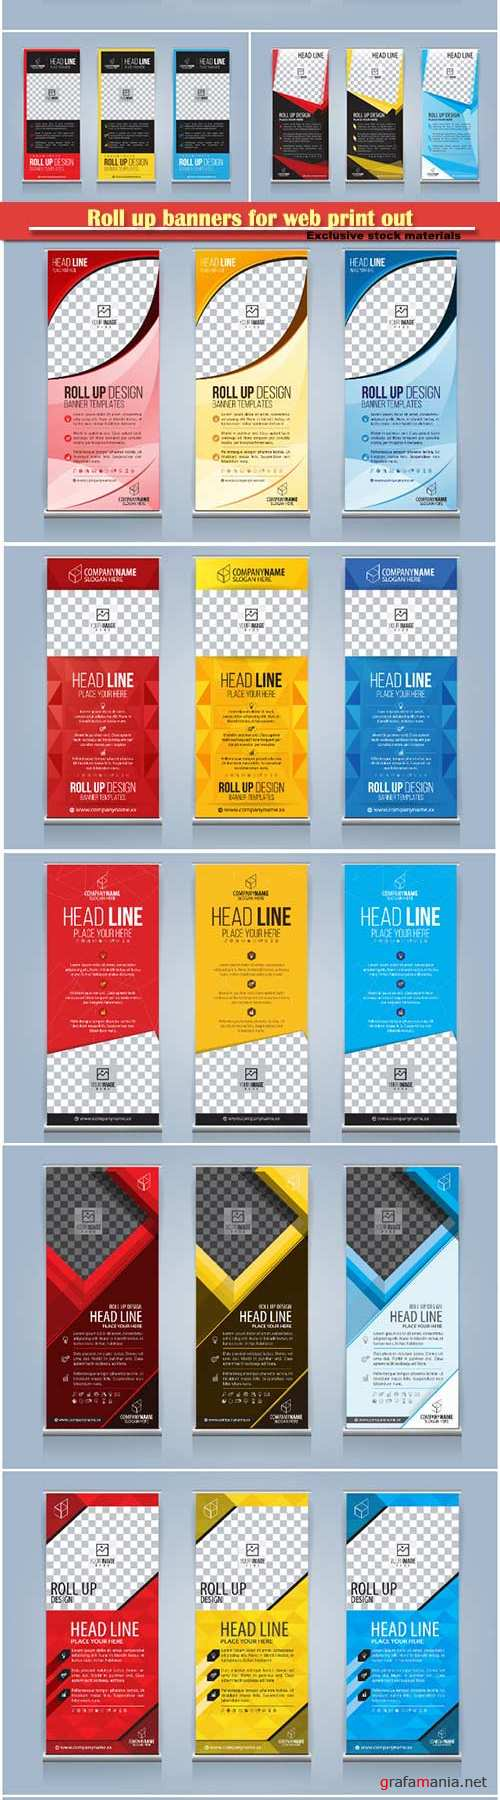 Roll up banners for web and advertisement print out, vector flyer handout design # 2